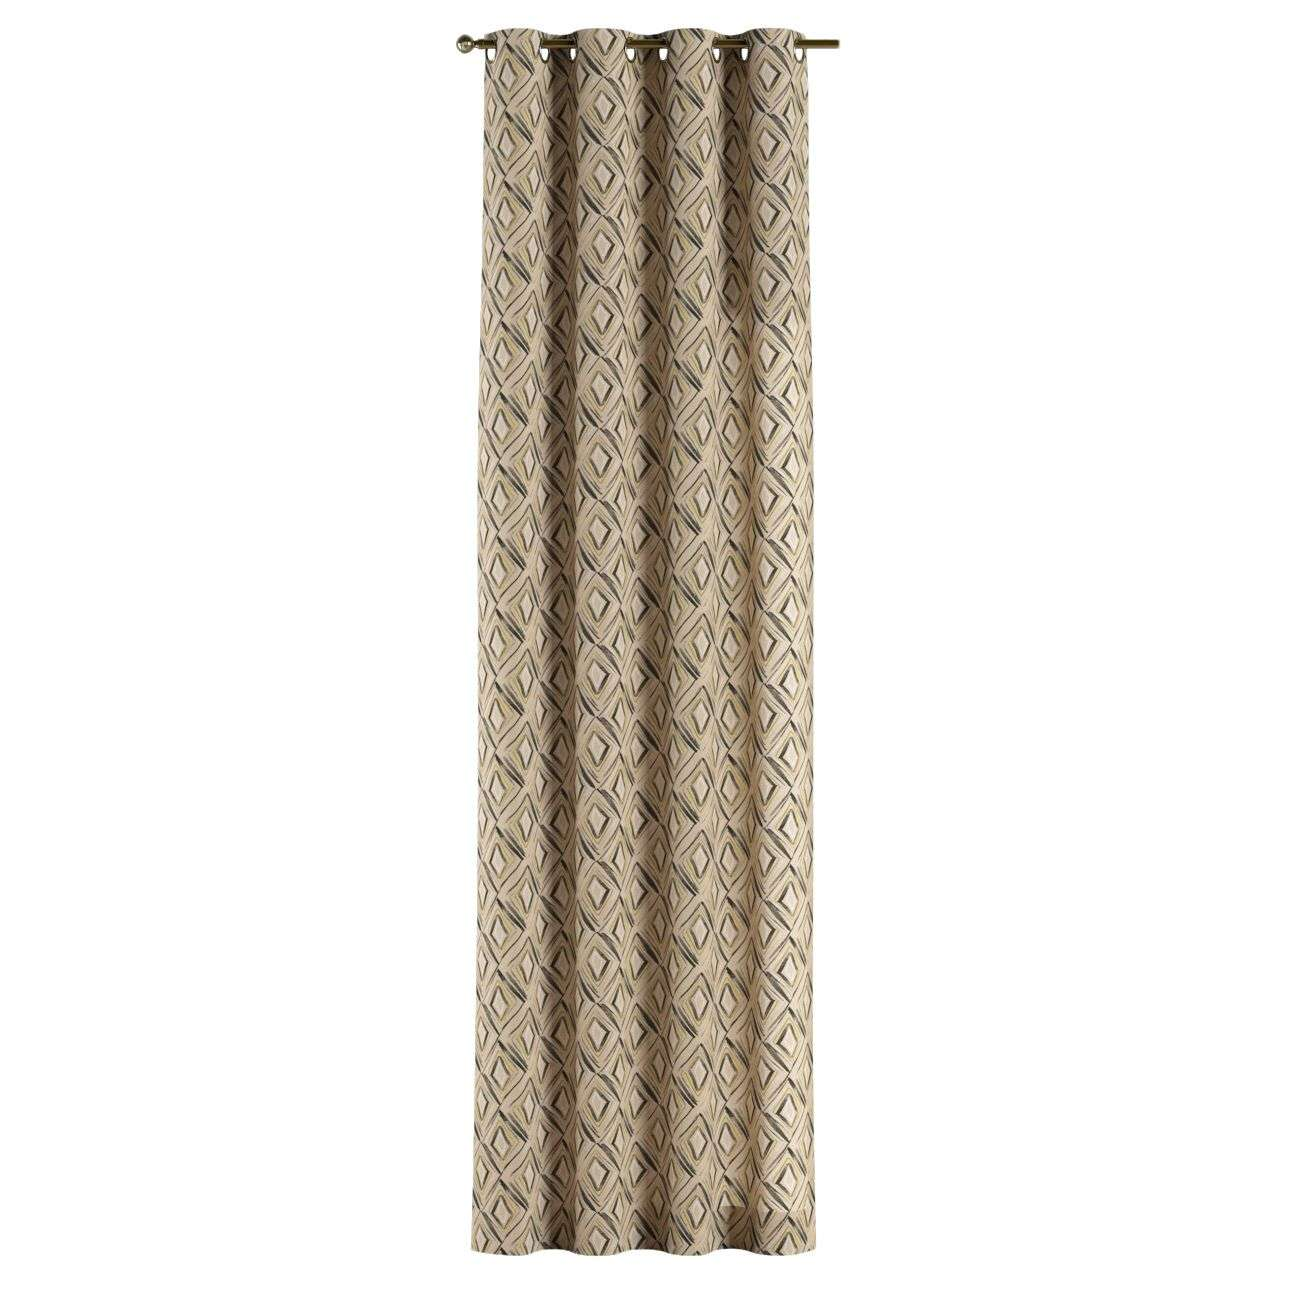 Eyelet curtains 130 x 260 cm (51 x 102 inch) in collection Londres, fabric: 140-46